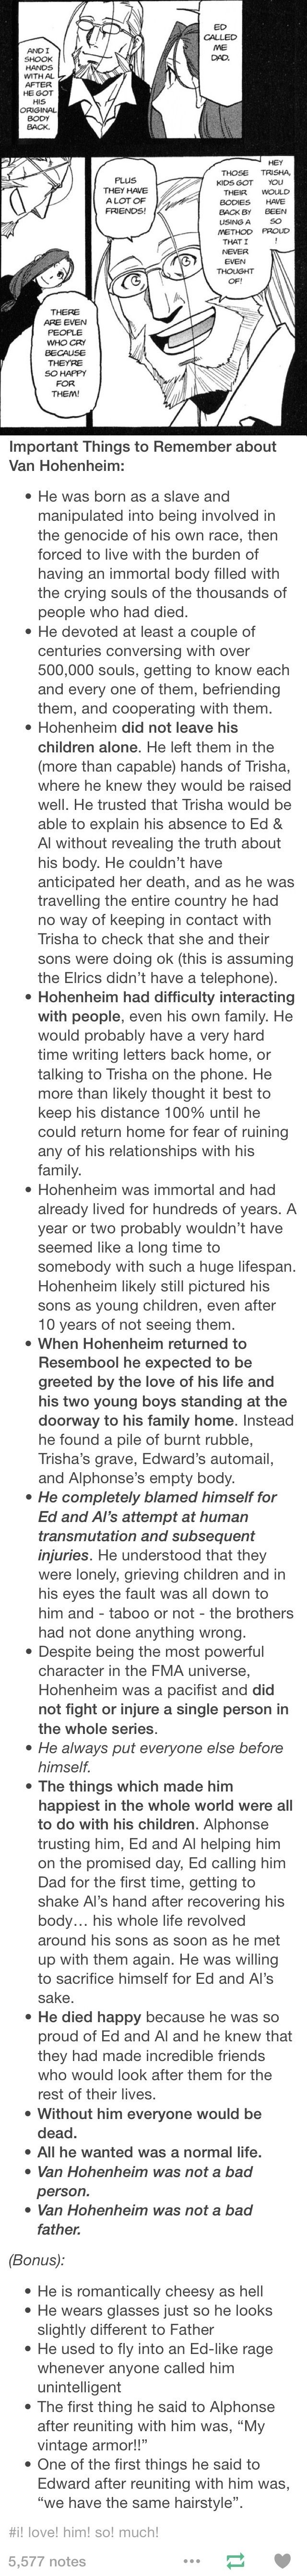 Hohenheim is my is one of my favorite characters and gives me all the feels. Plus he reminds me of my own dad. :)